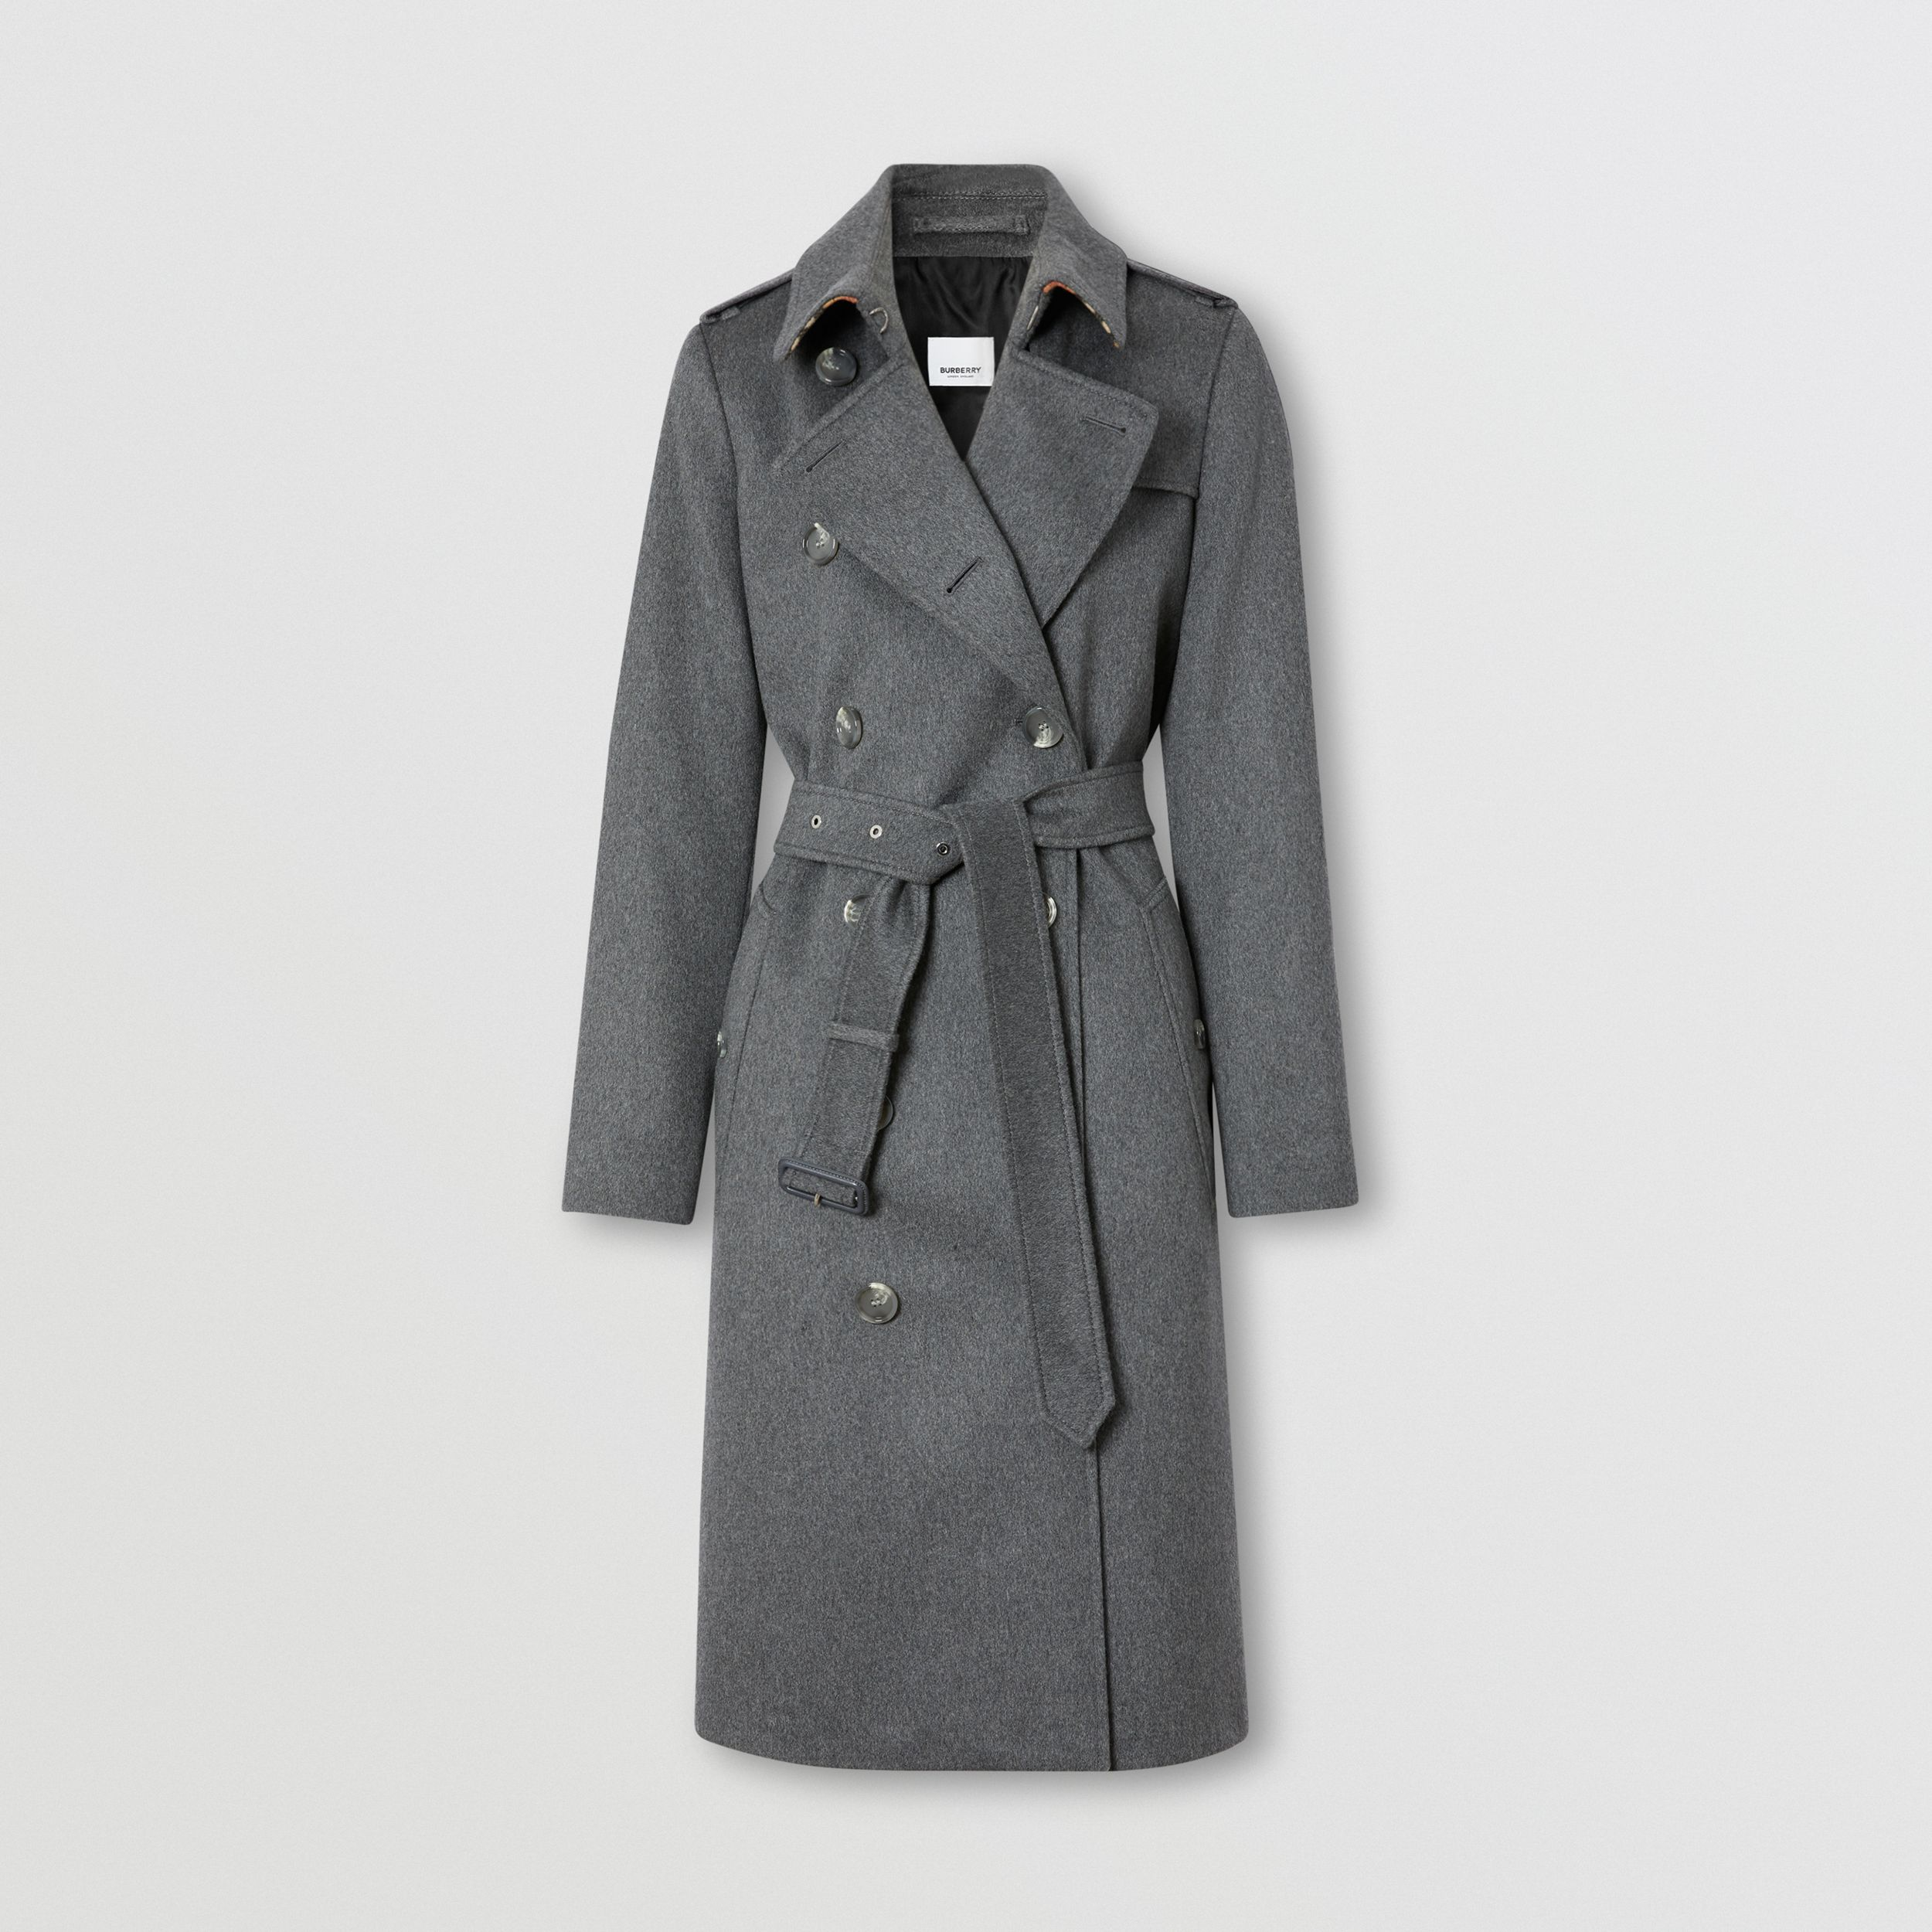 Cashmere Trench Coat in Mid Grey Melange - Women | Burberry - 4